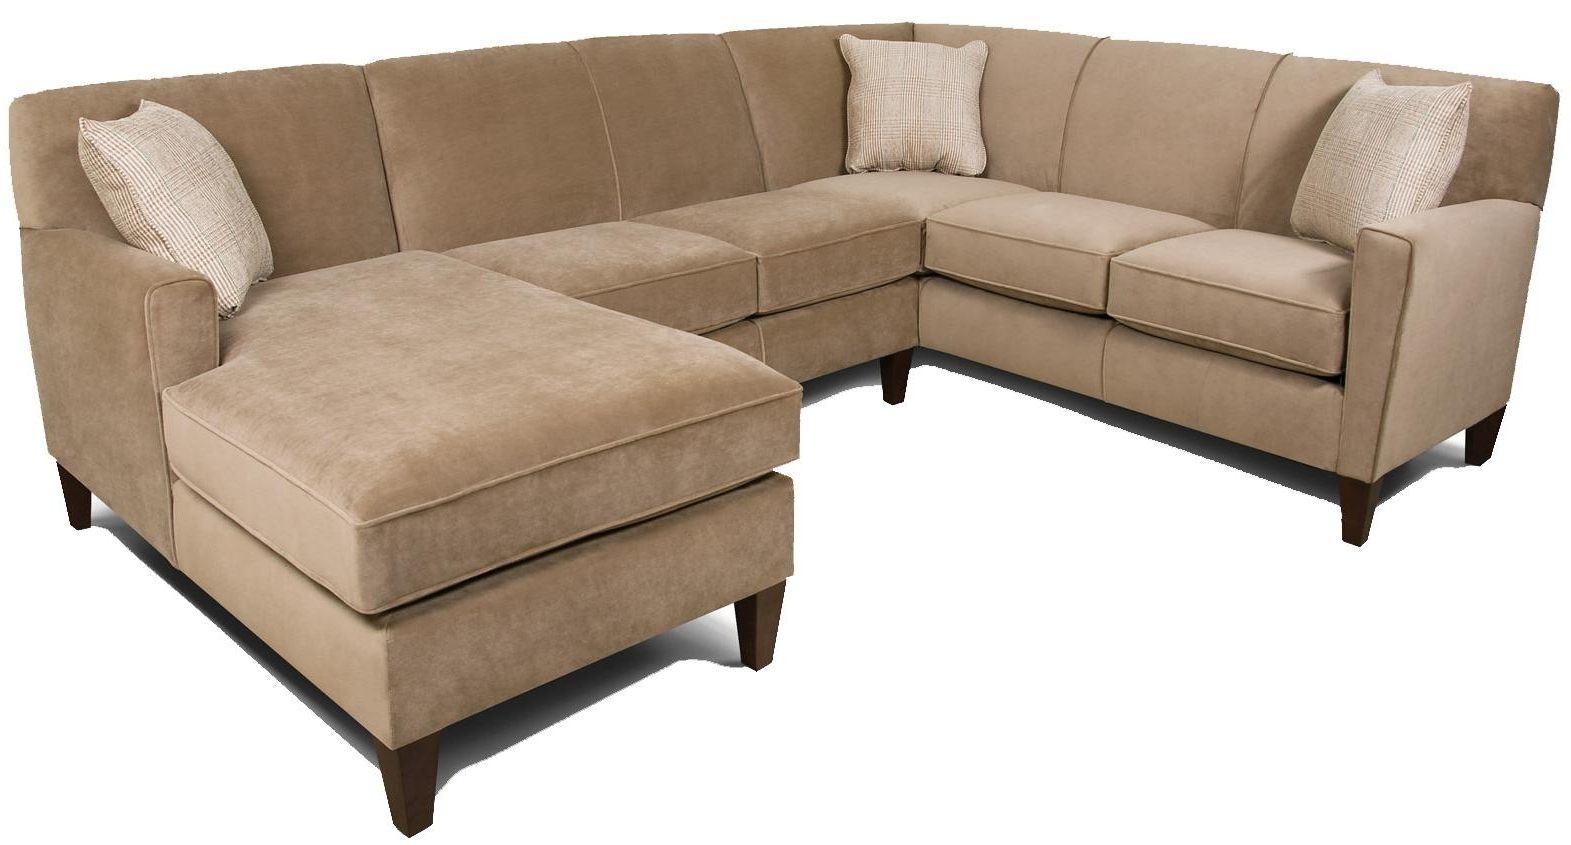 2019 England Collegedale Contemporary 3 Piece Sectional Sofa With Raf In England Sectional Sofas (View 2 of 20)